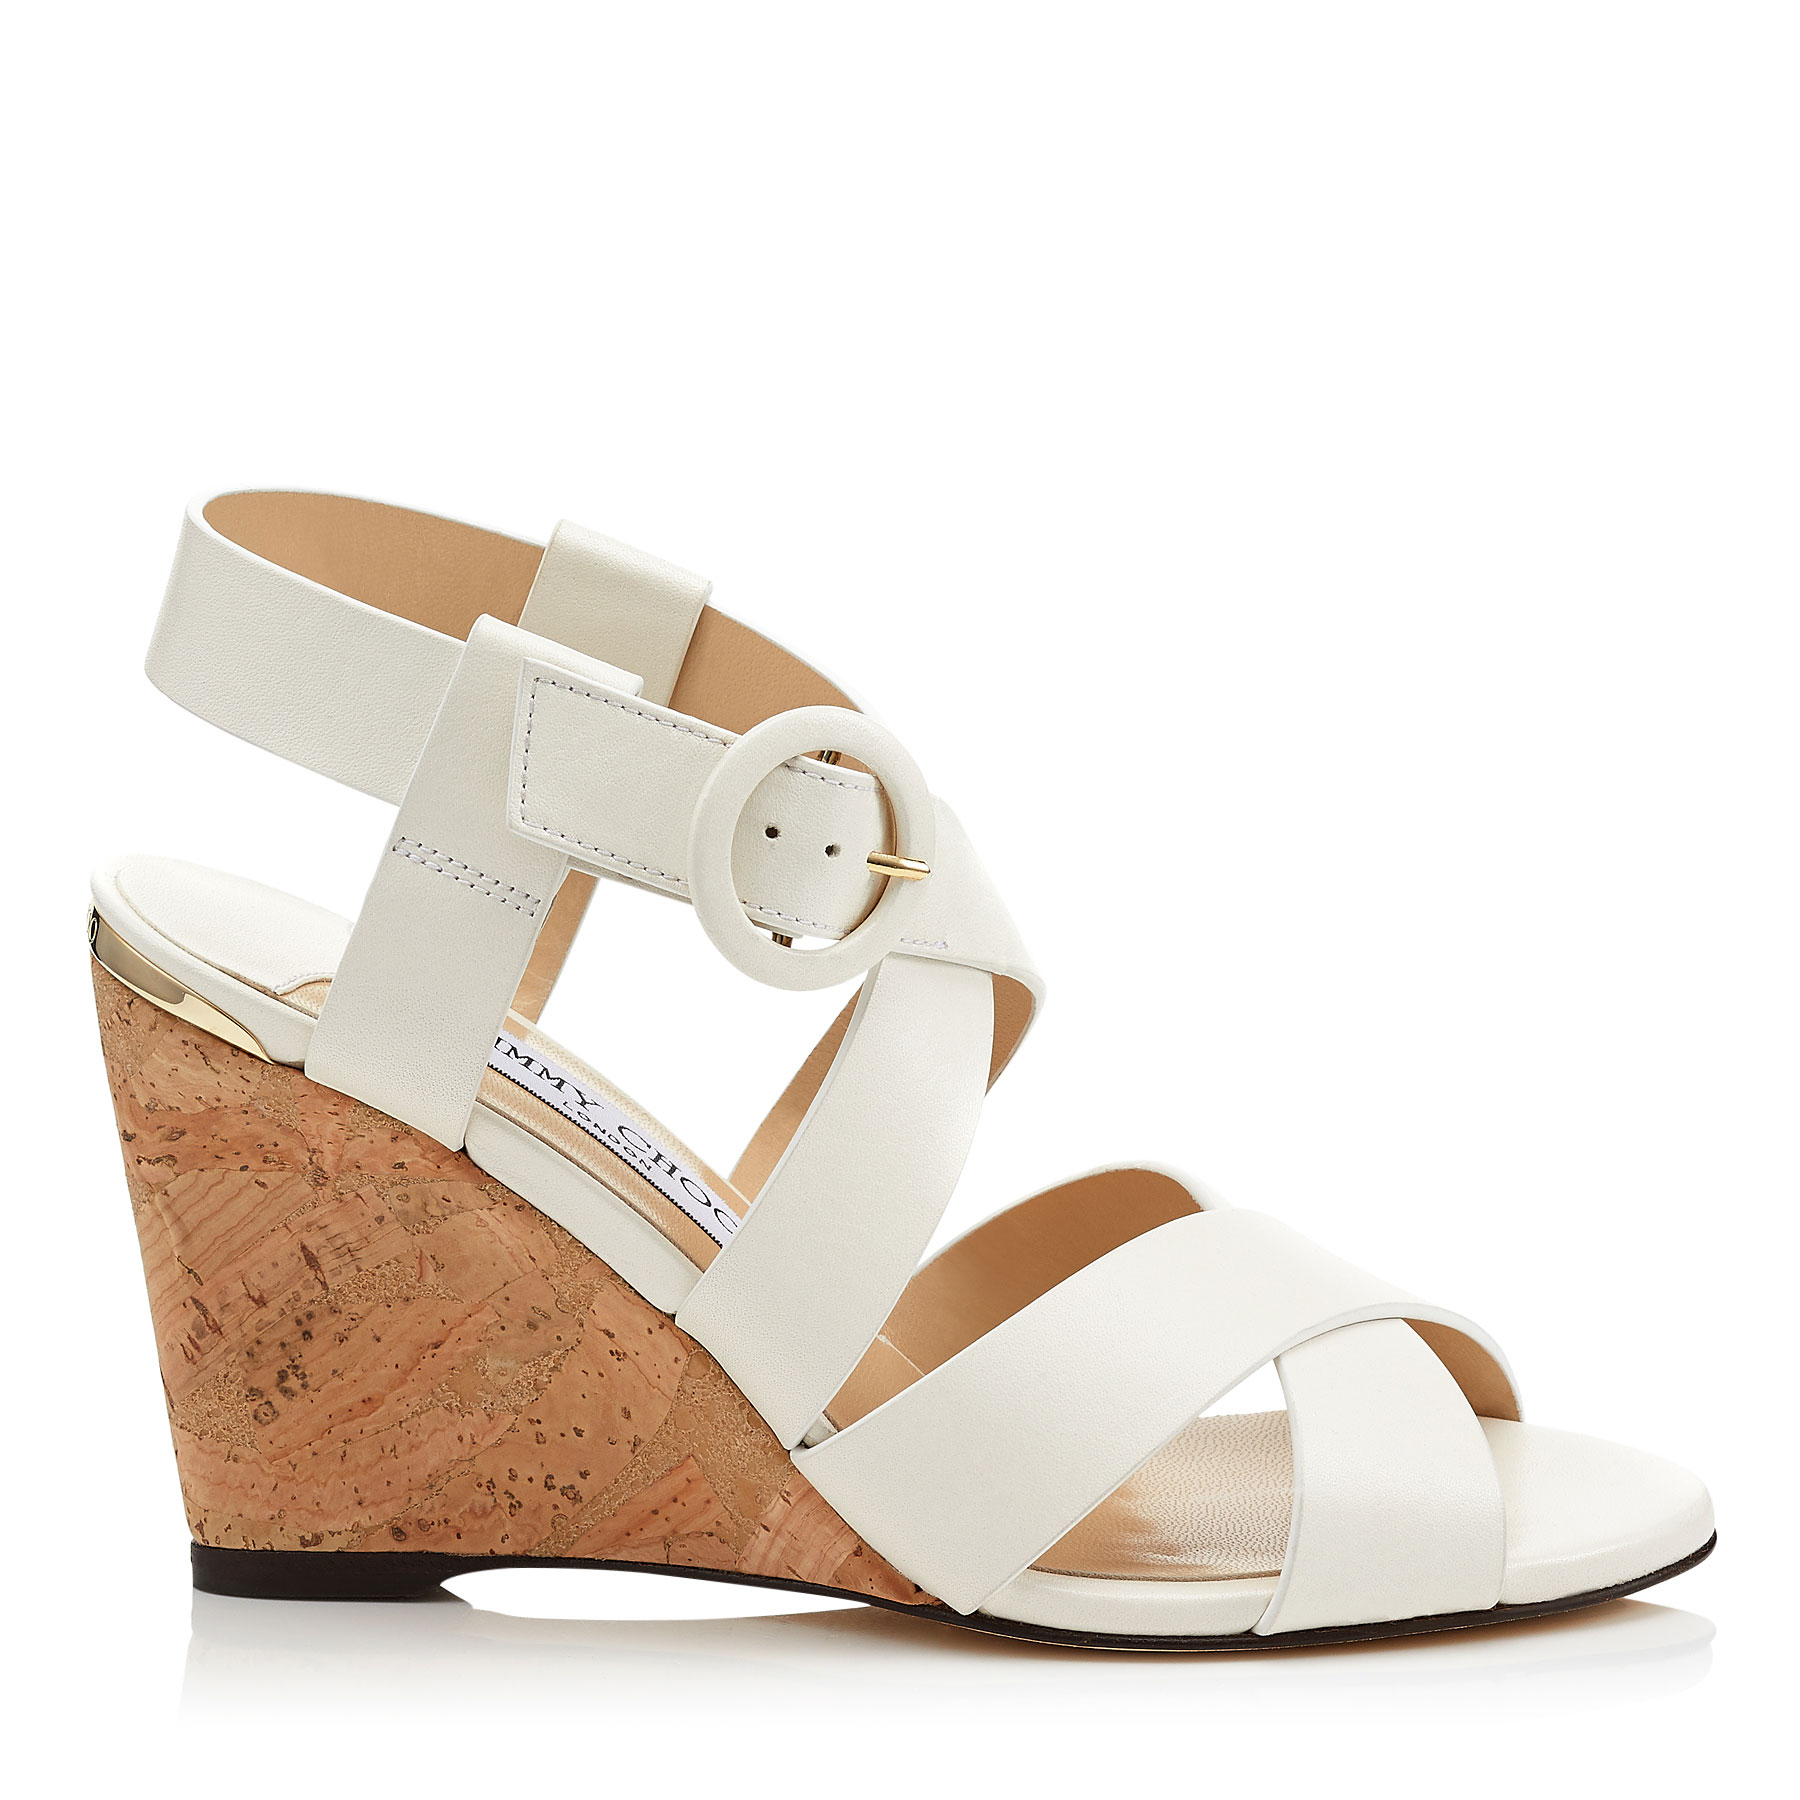 DOMENIQUE 85 White Vachetta Leather Cork Wedges by Jimmy Choo